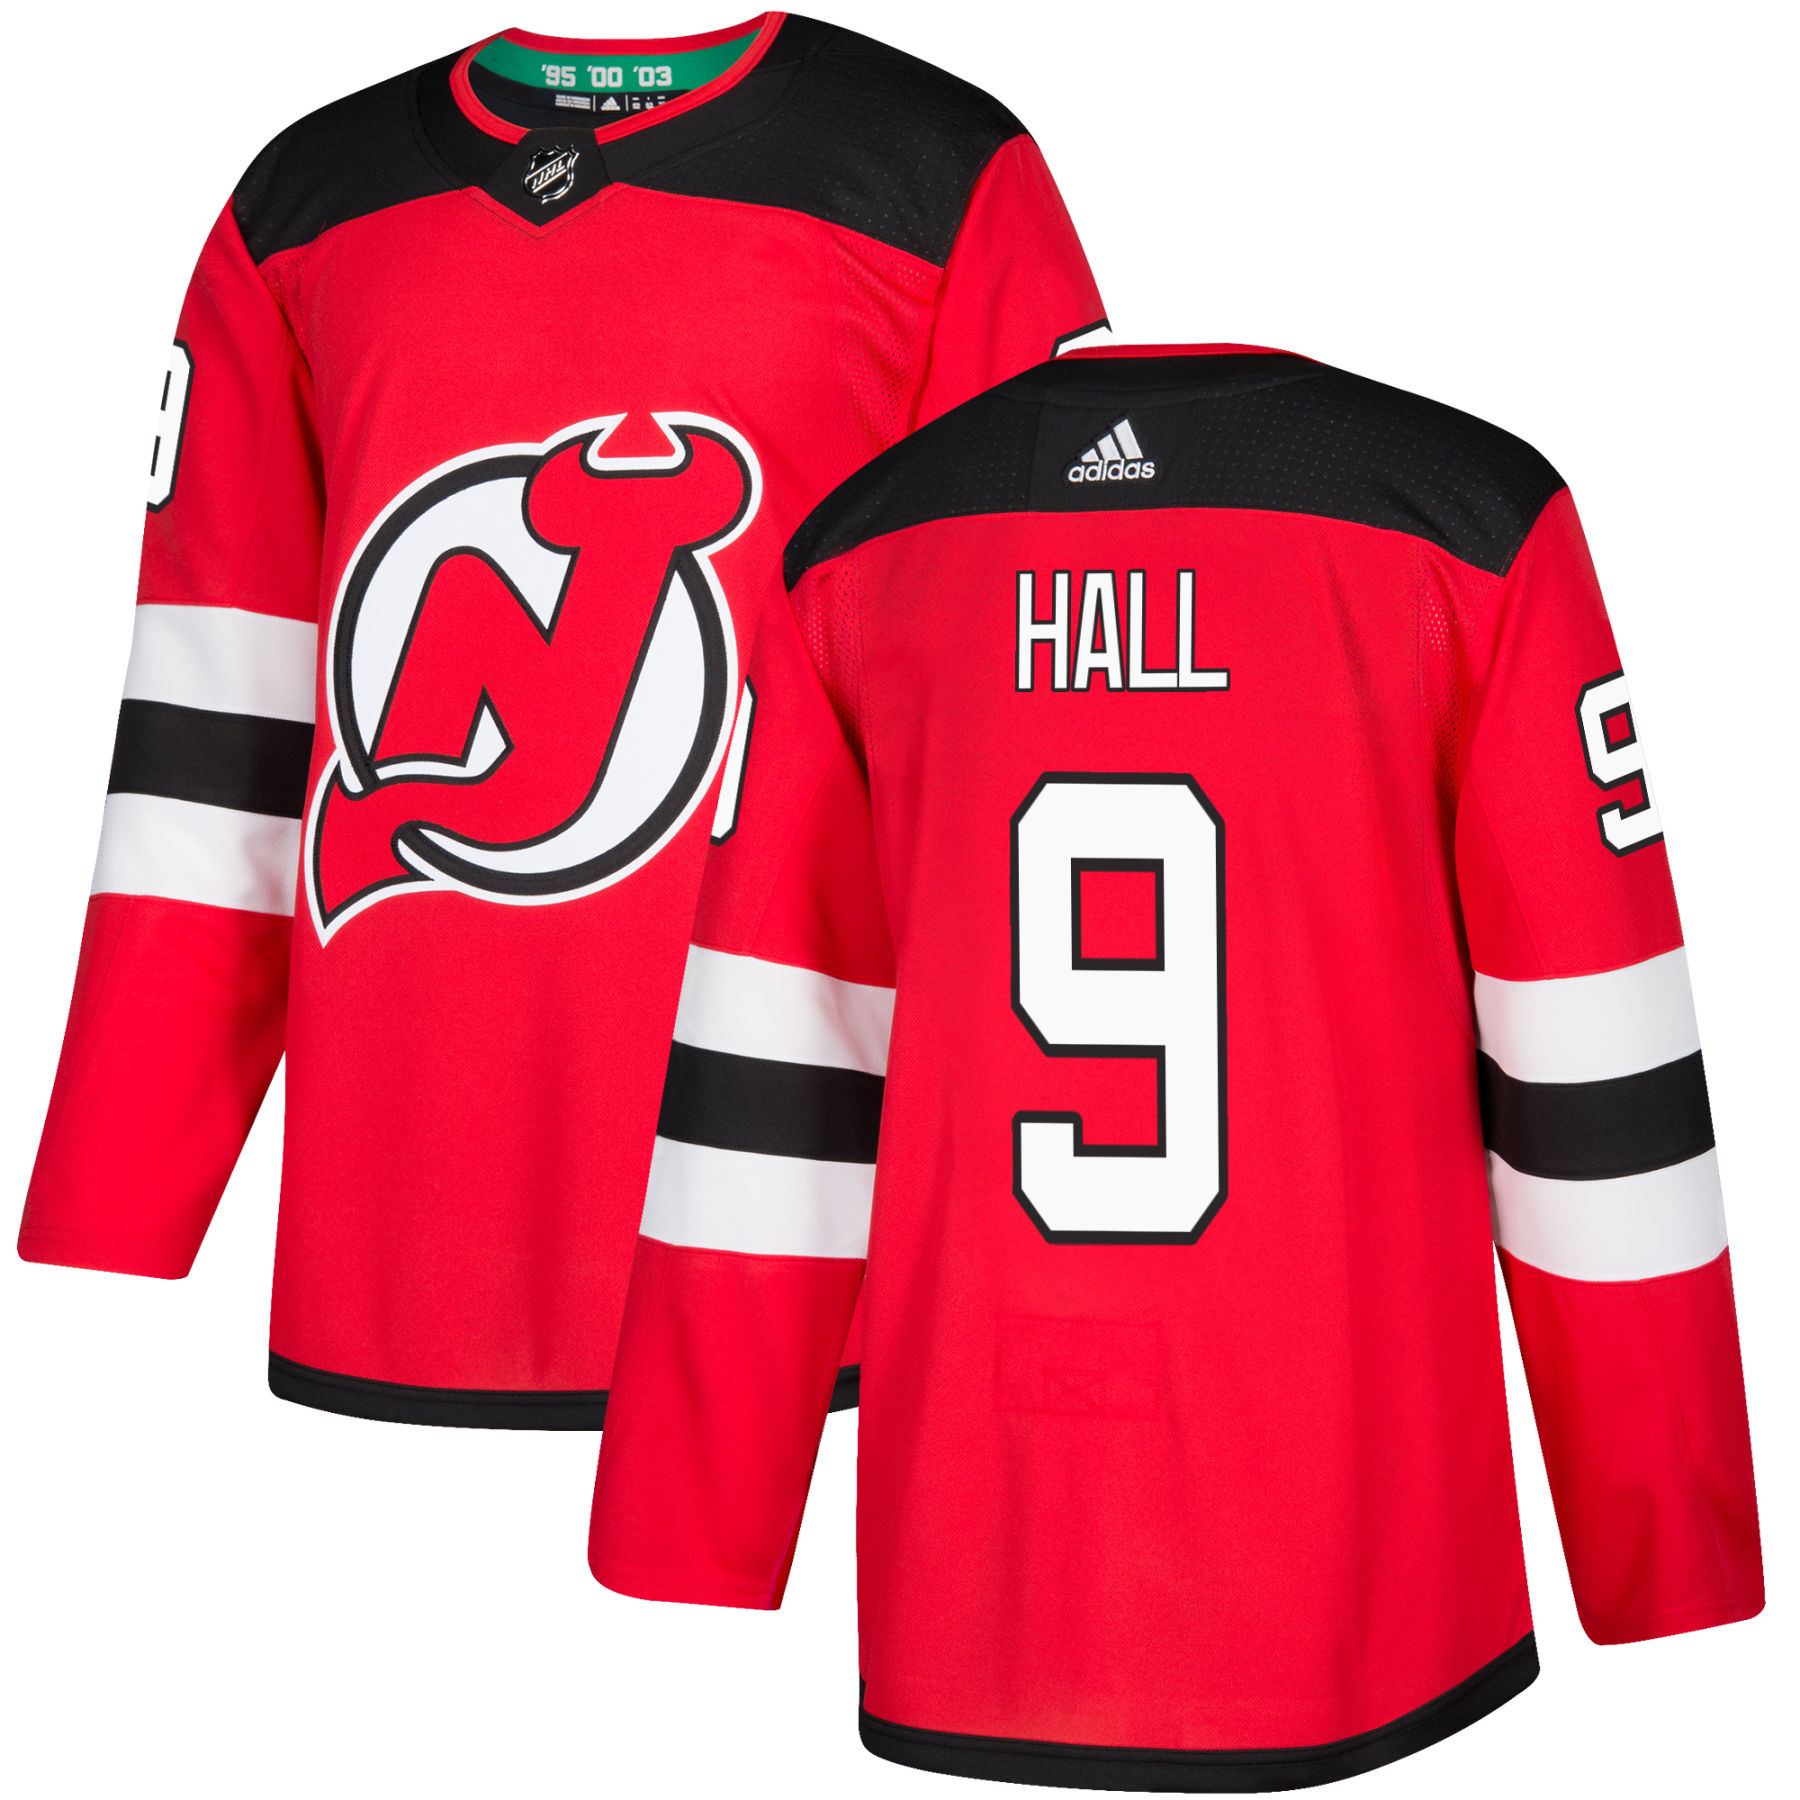 low priced 0eea4 d43e5 Taylor Hall New Jersey - Pro Stitched Devils adidas NHL Authentic Pro Home  Jersey - Pro Stitched